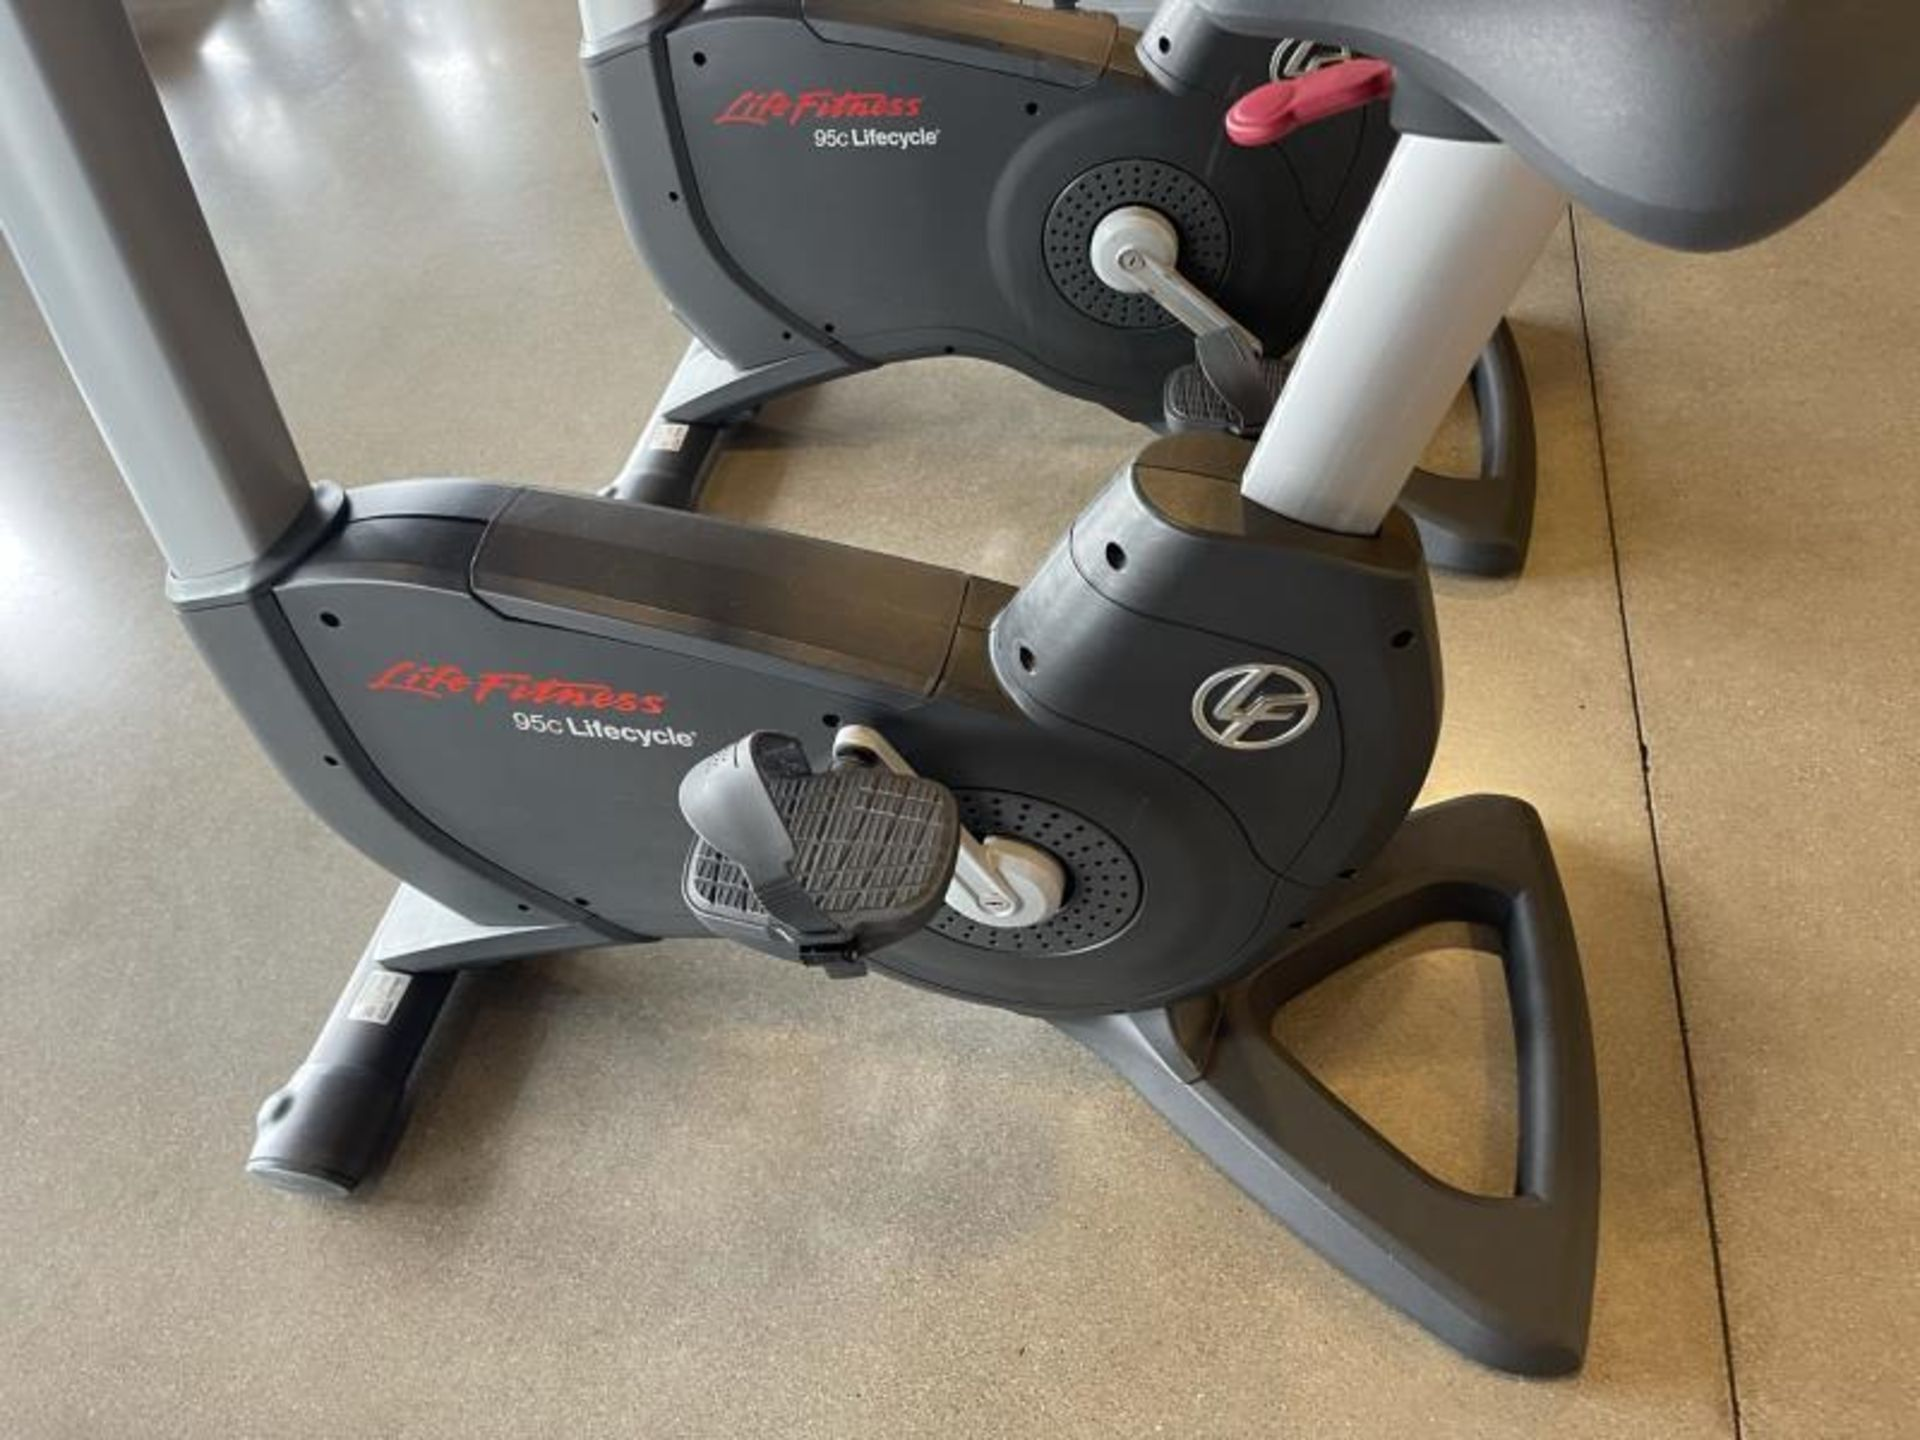 Life Fitness Exercise Bike M: 95CLifecycle, SN: CLV102820 - Image 2 of 4